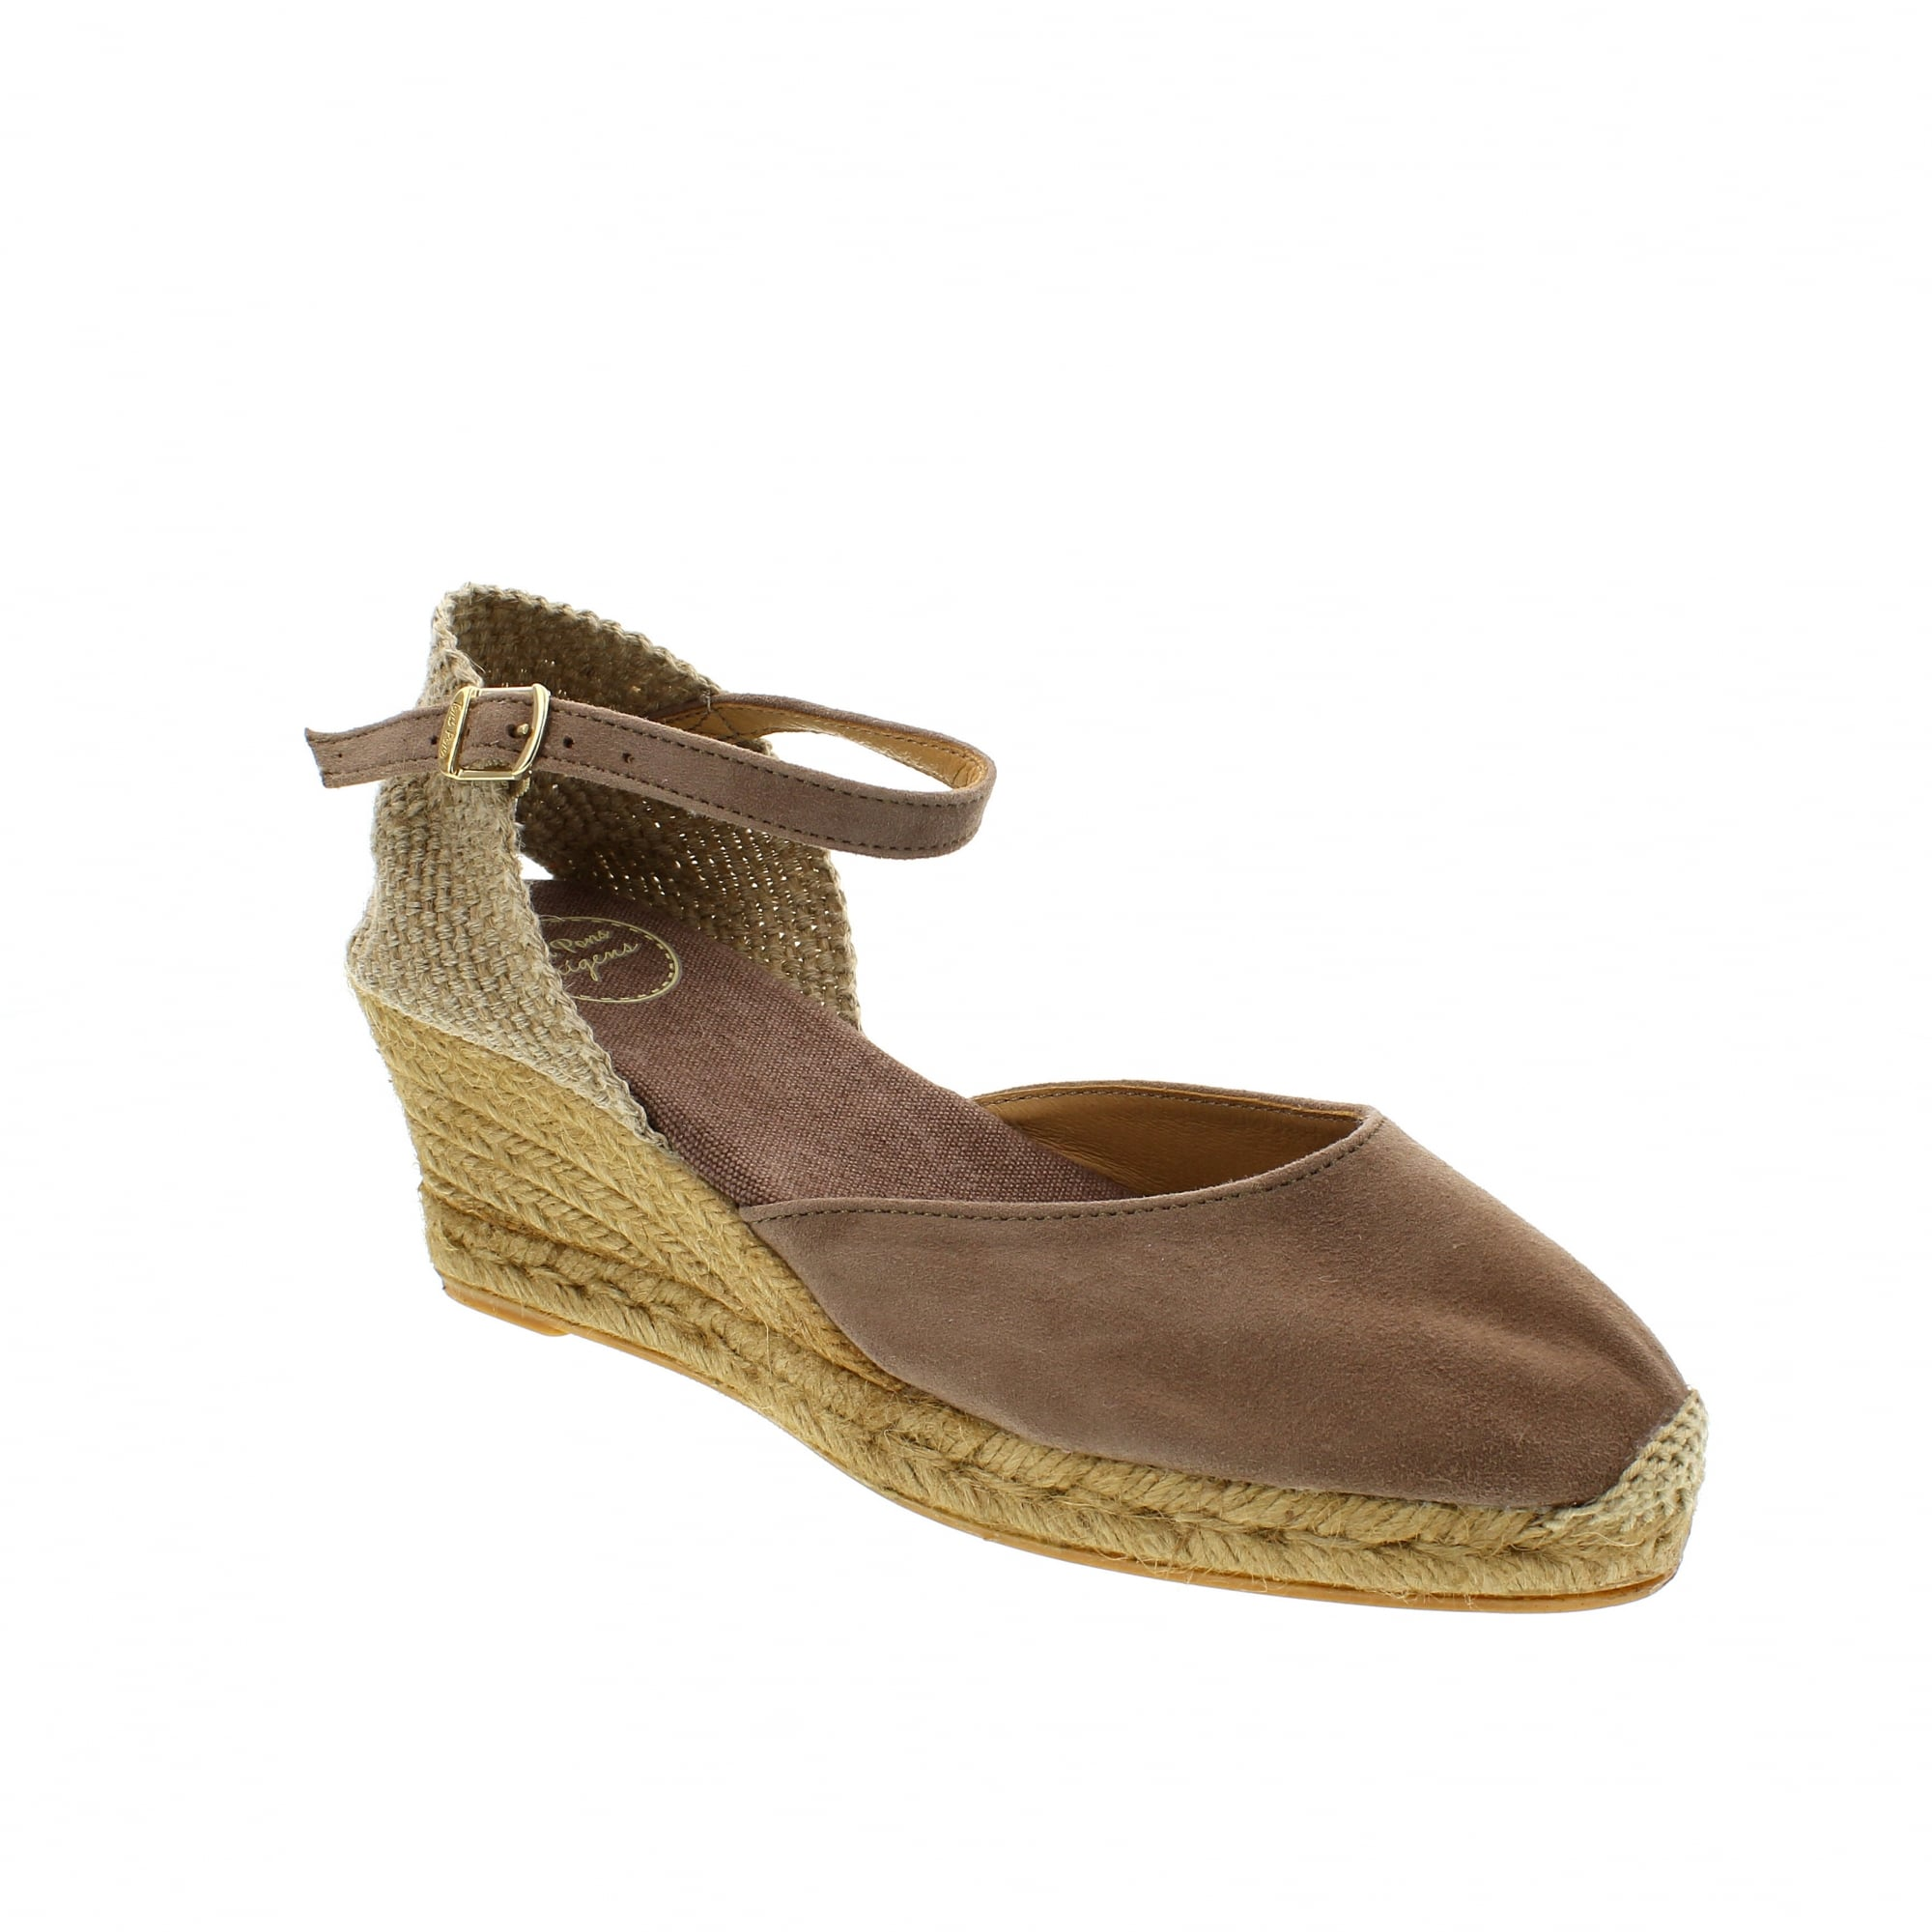 38bfce8f Toni Pons Lloret-5-v41 - Womens from Rogerson Shoes UK